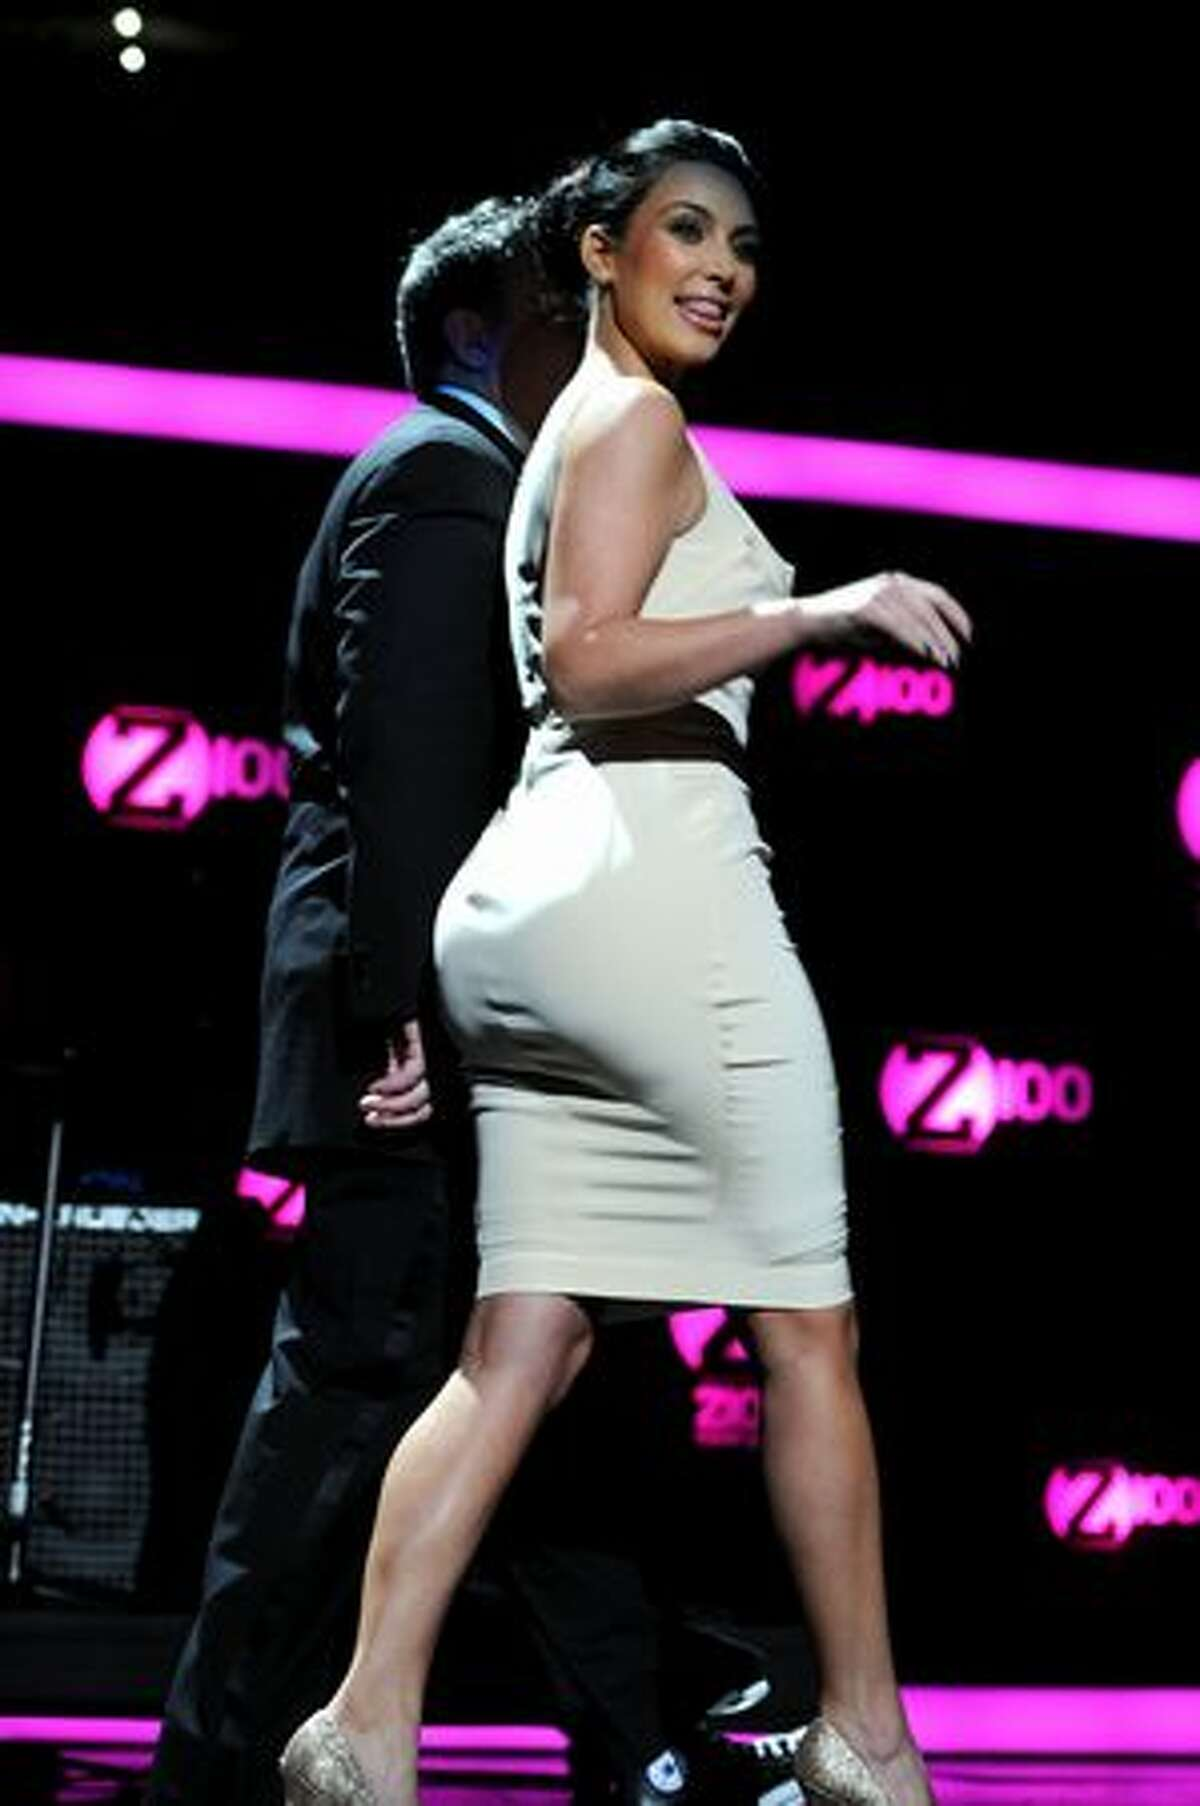 Host Elvis Duran of Z100 and Kim Kardashian walk onstage.